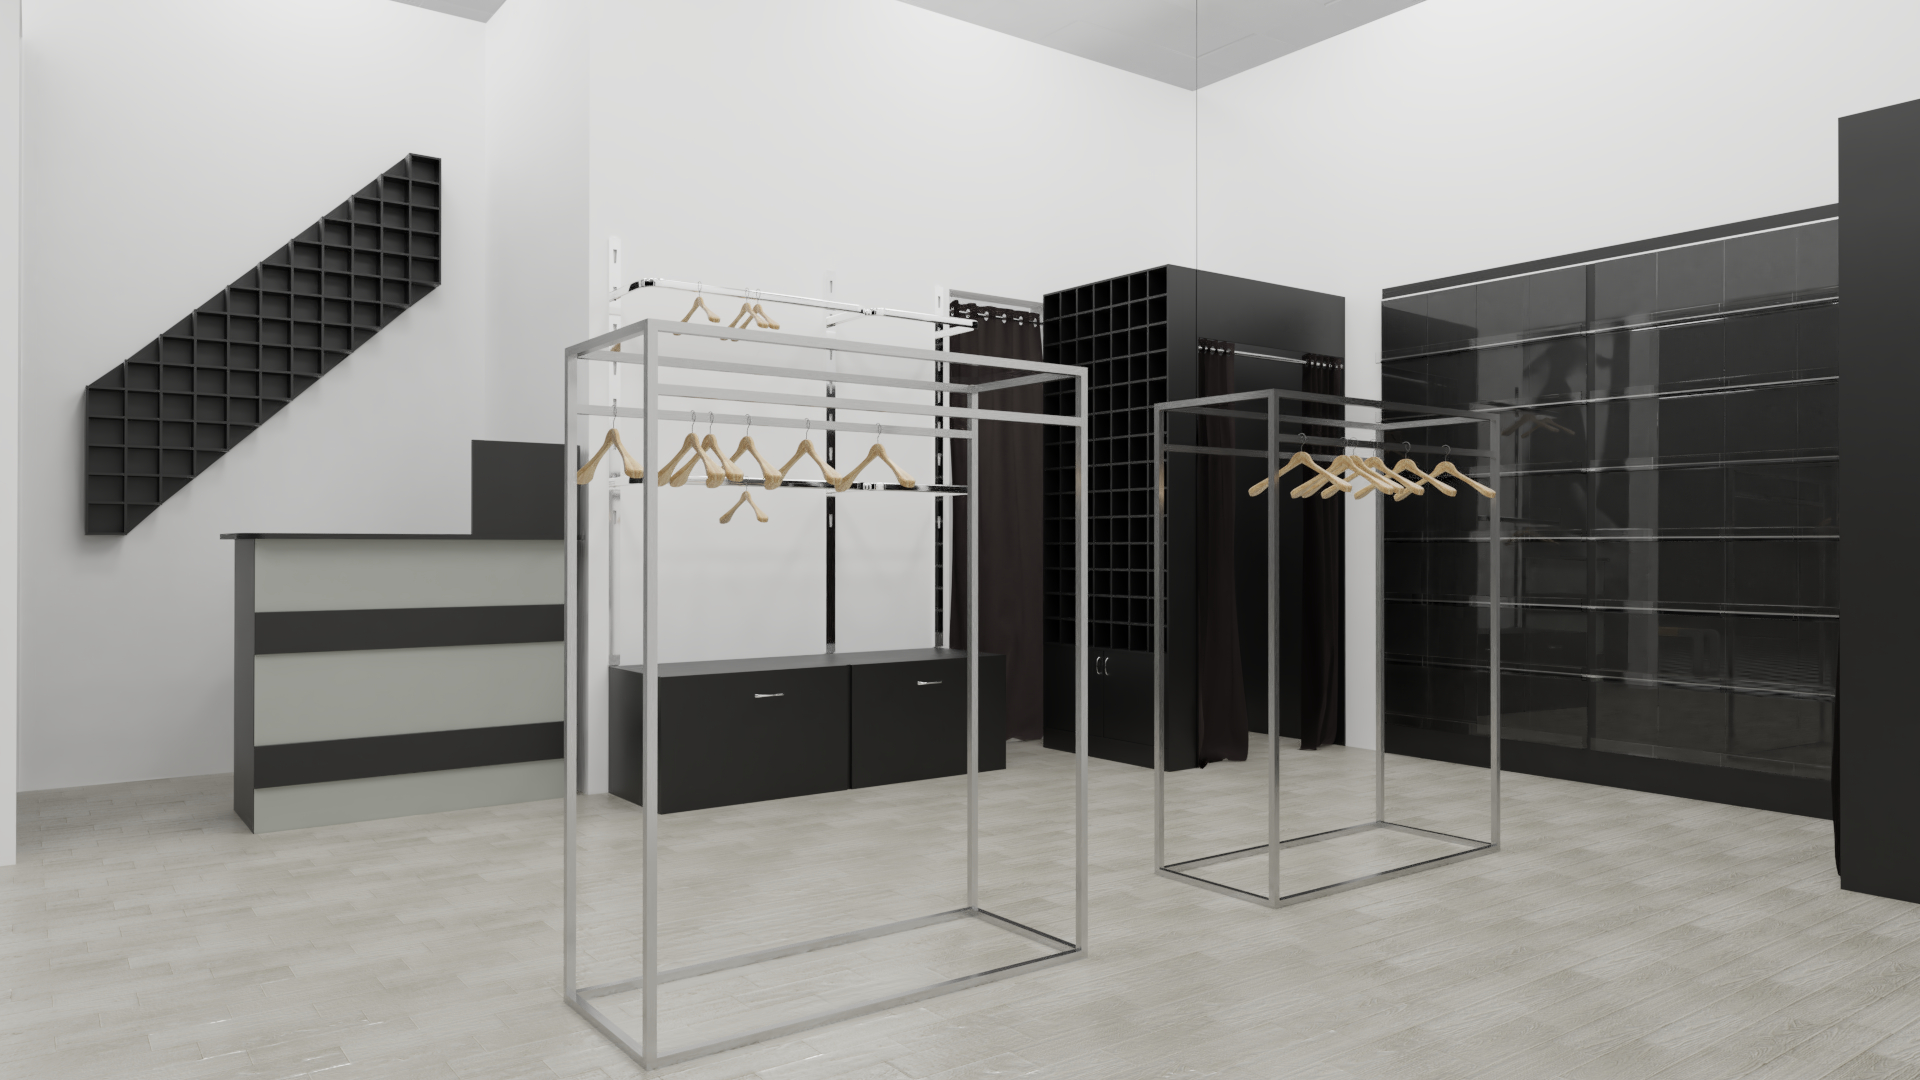 Men's clothing store in the shopping center. in Blender cycles render image